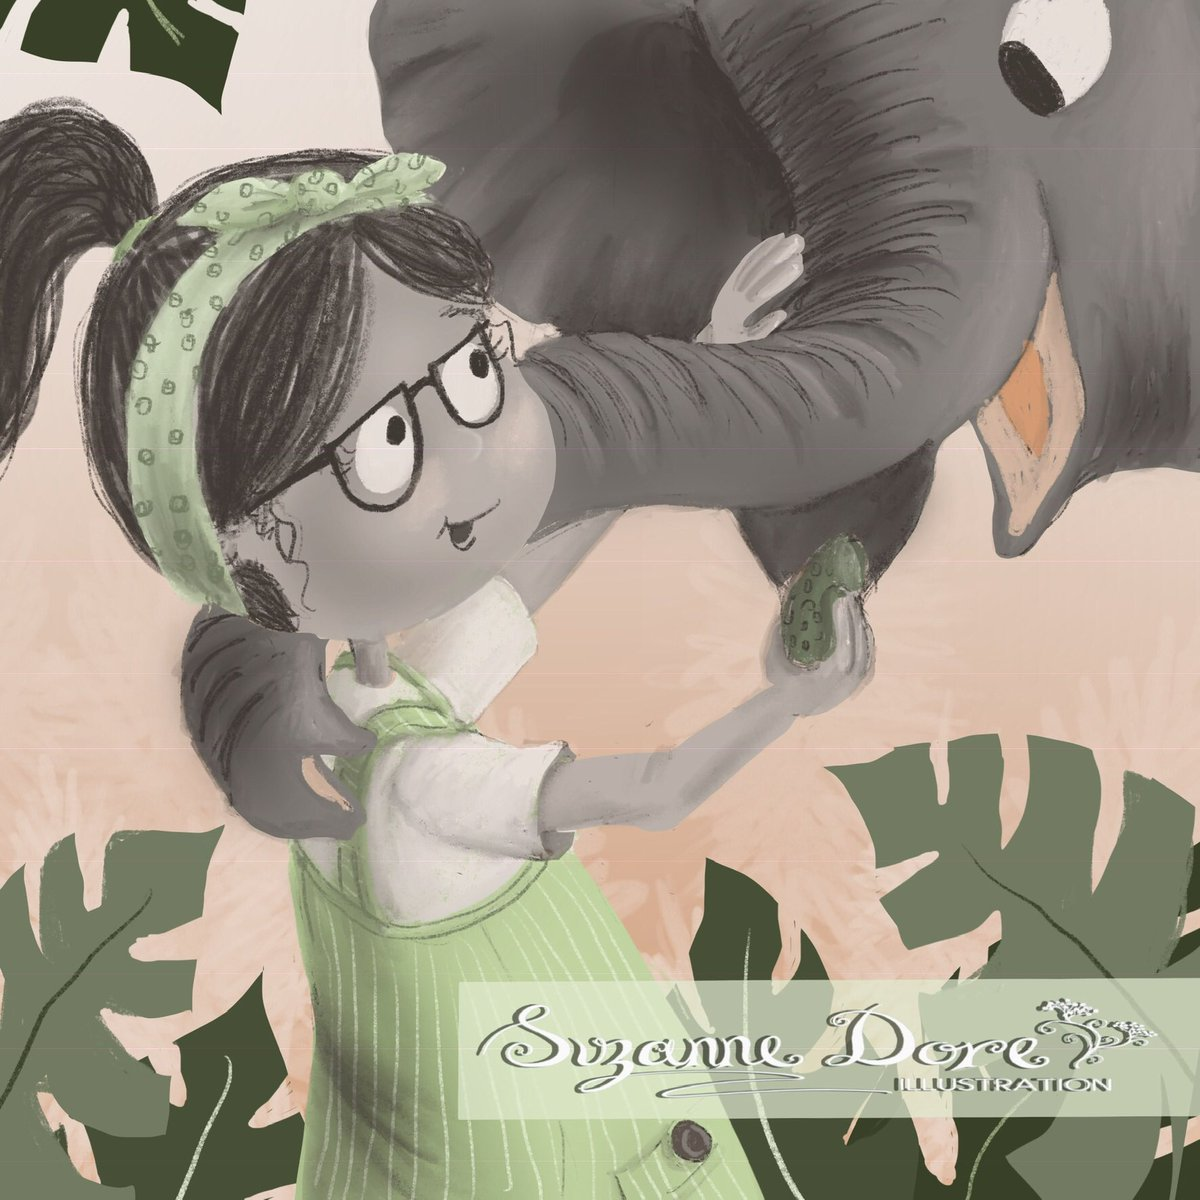 Good to be back. Hello 2019. What is Emma's favourite food? Probably #avocados  #elephant  #dinnertime #kidlitart #illustration #teagreen #Colour_Collective @Clr_Collective<br>http://pic.twitter.com/Z4P2d2N6t6